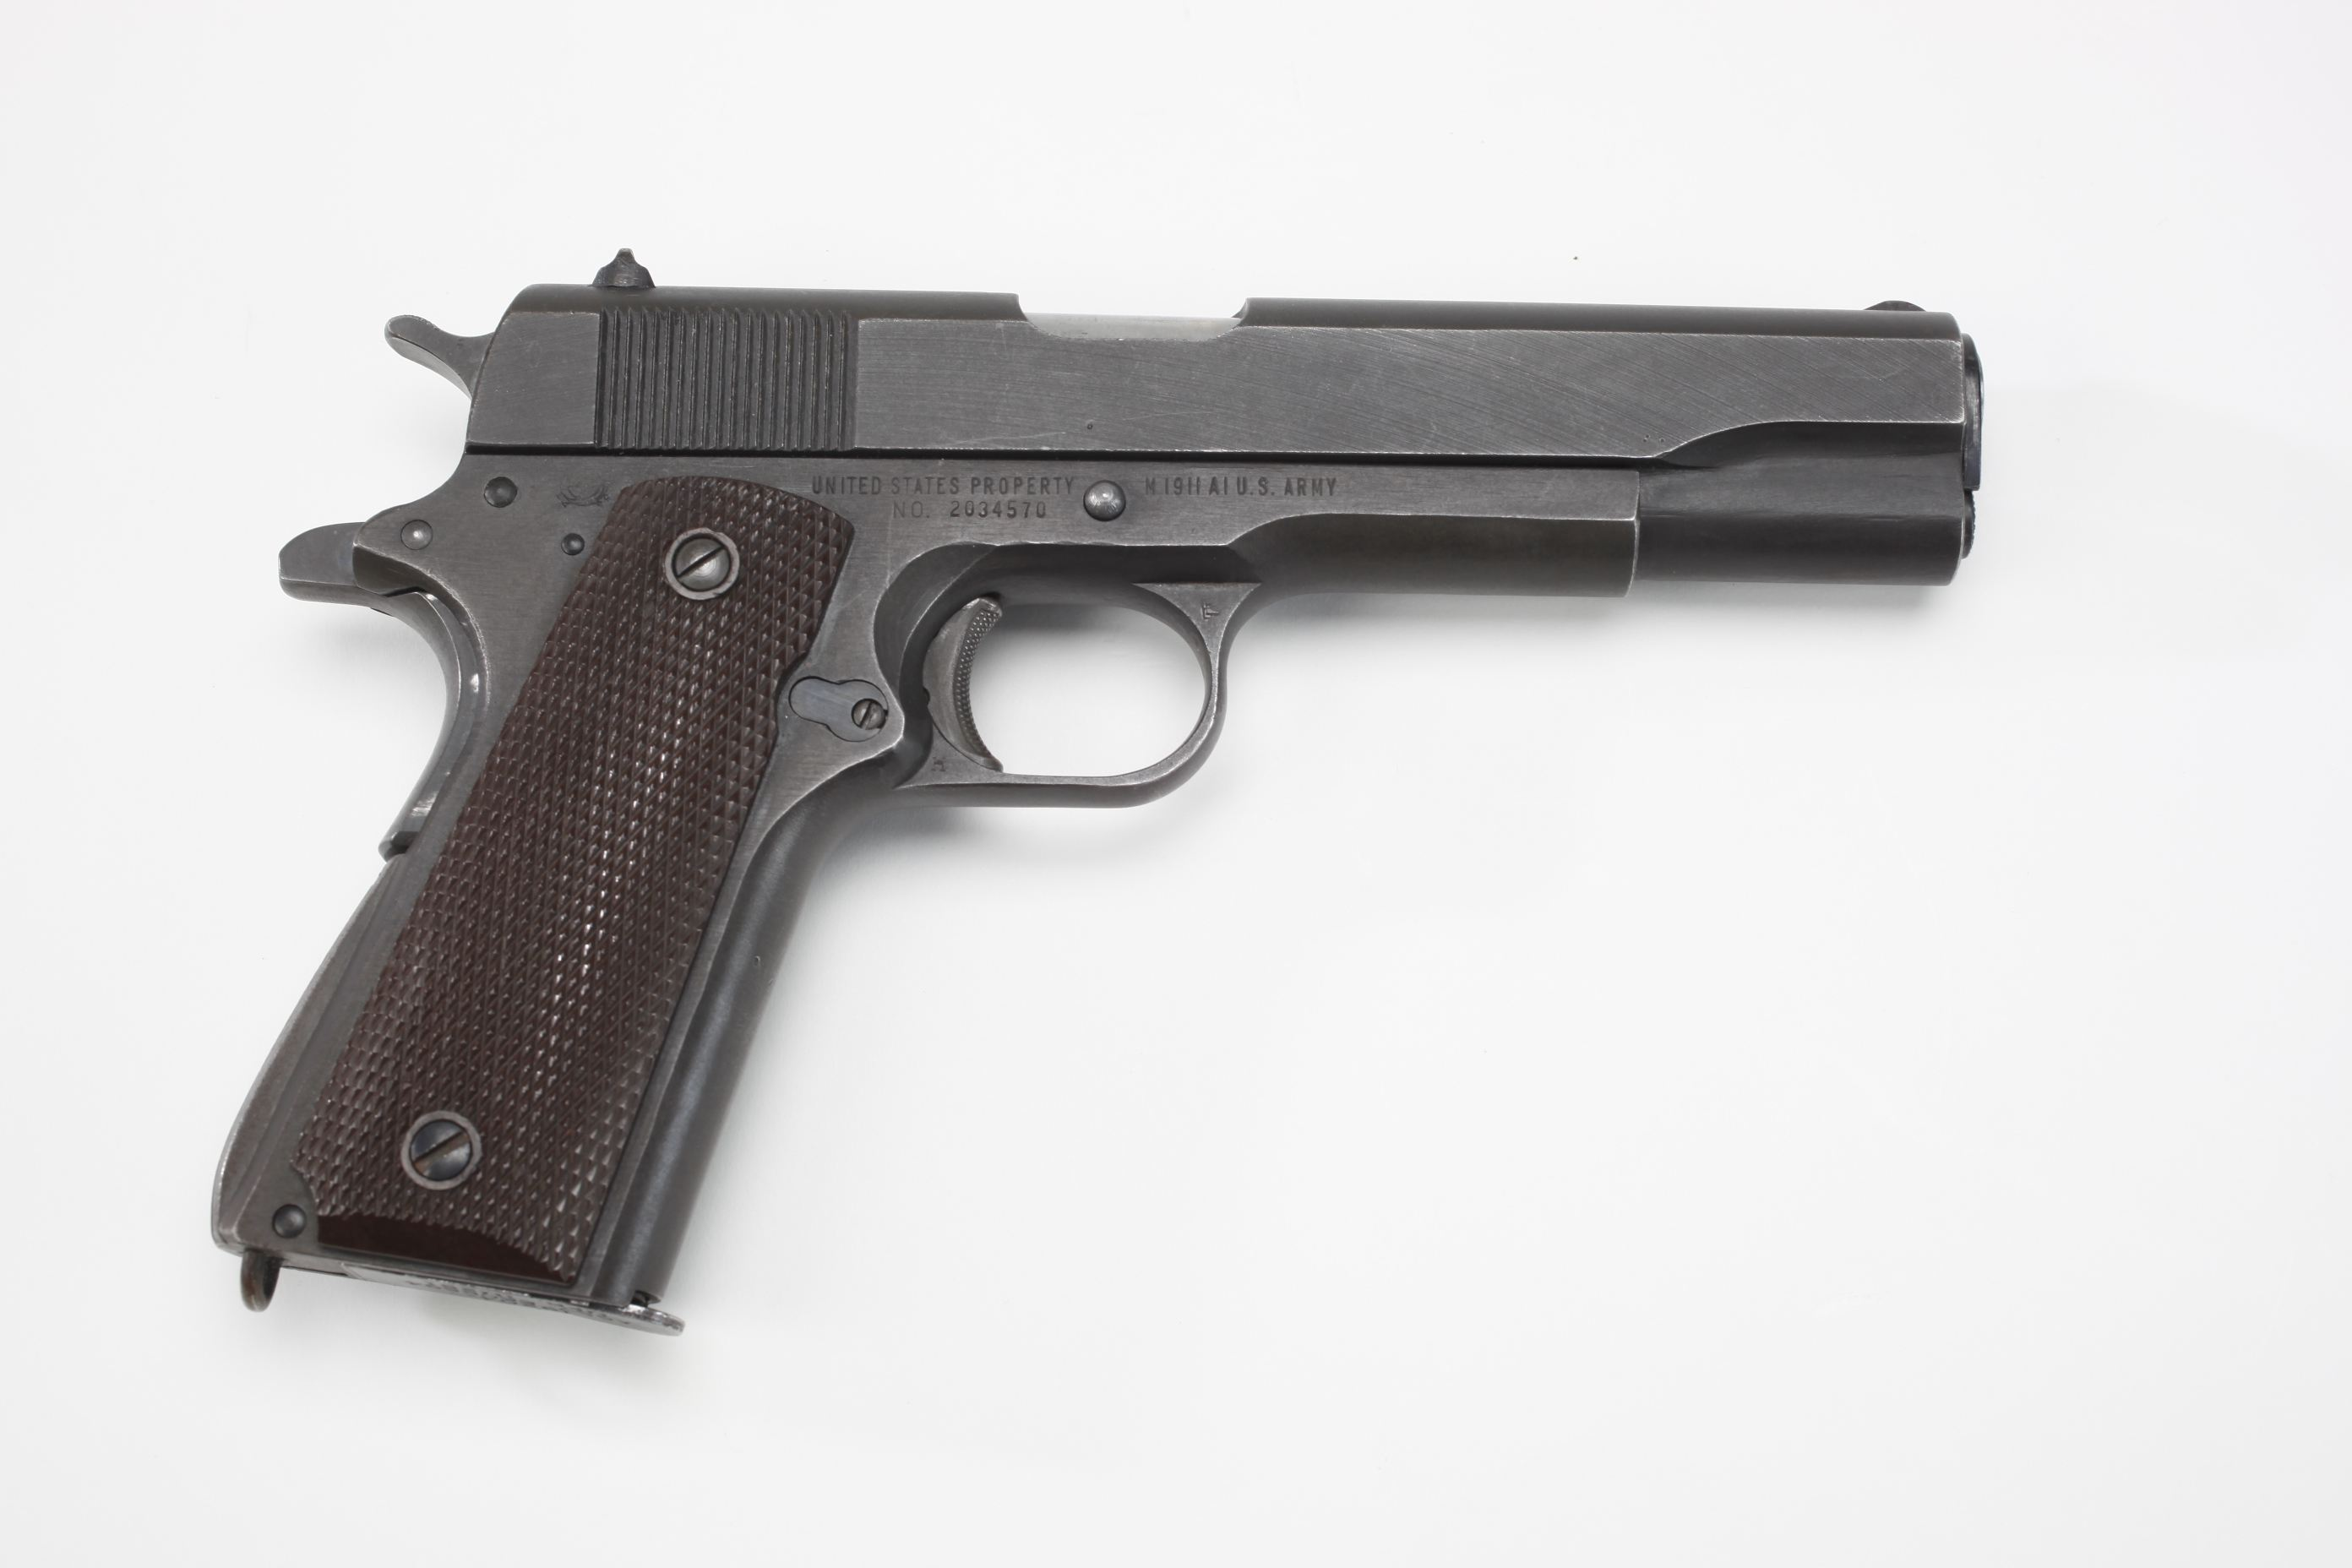 Remington Rand M1911A1 pistol